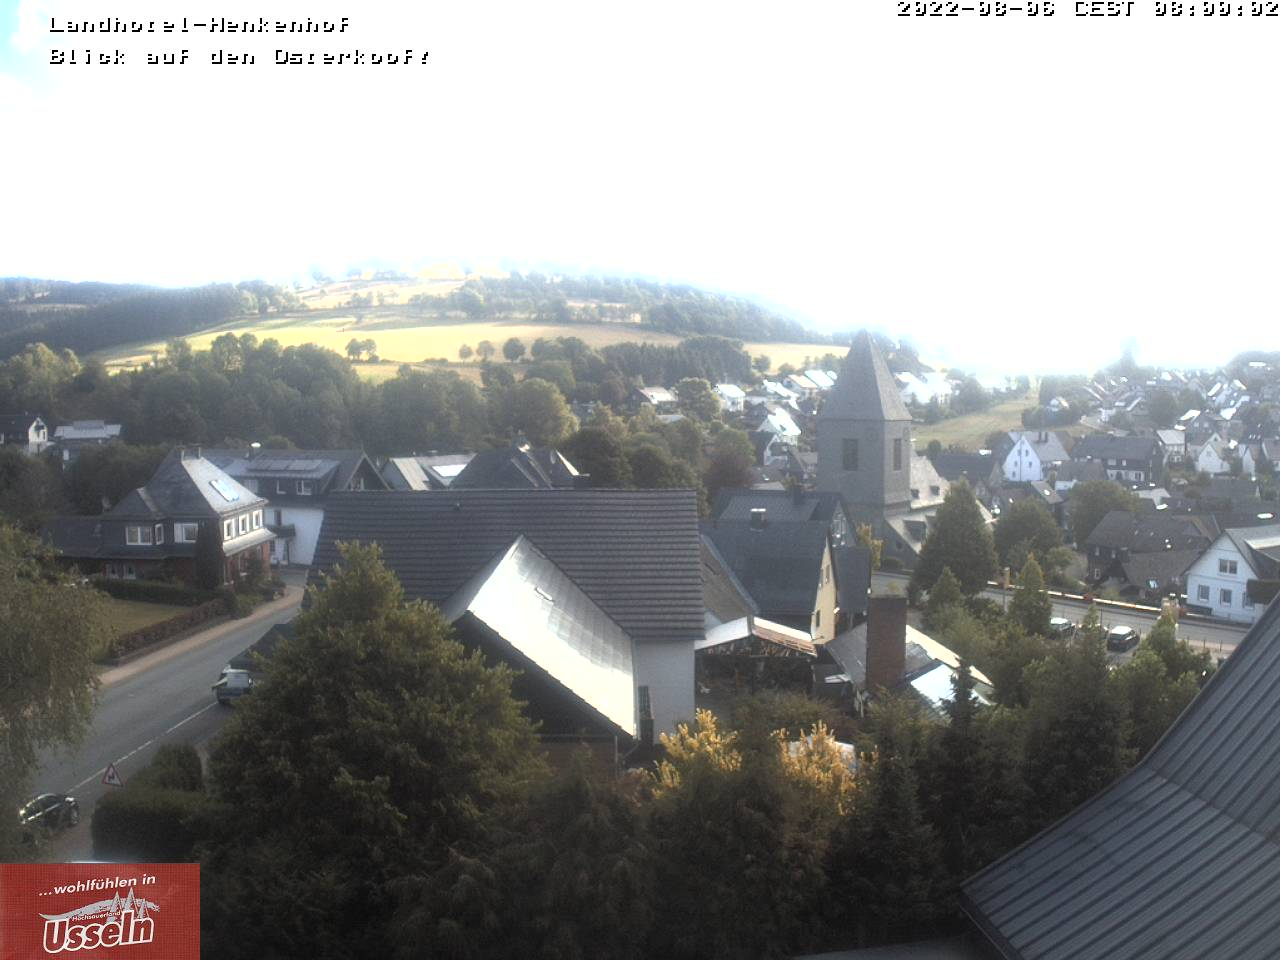 Webcam Willingen-Usseln